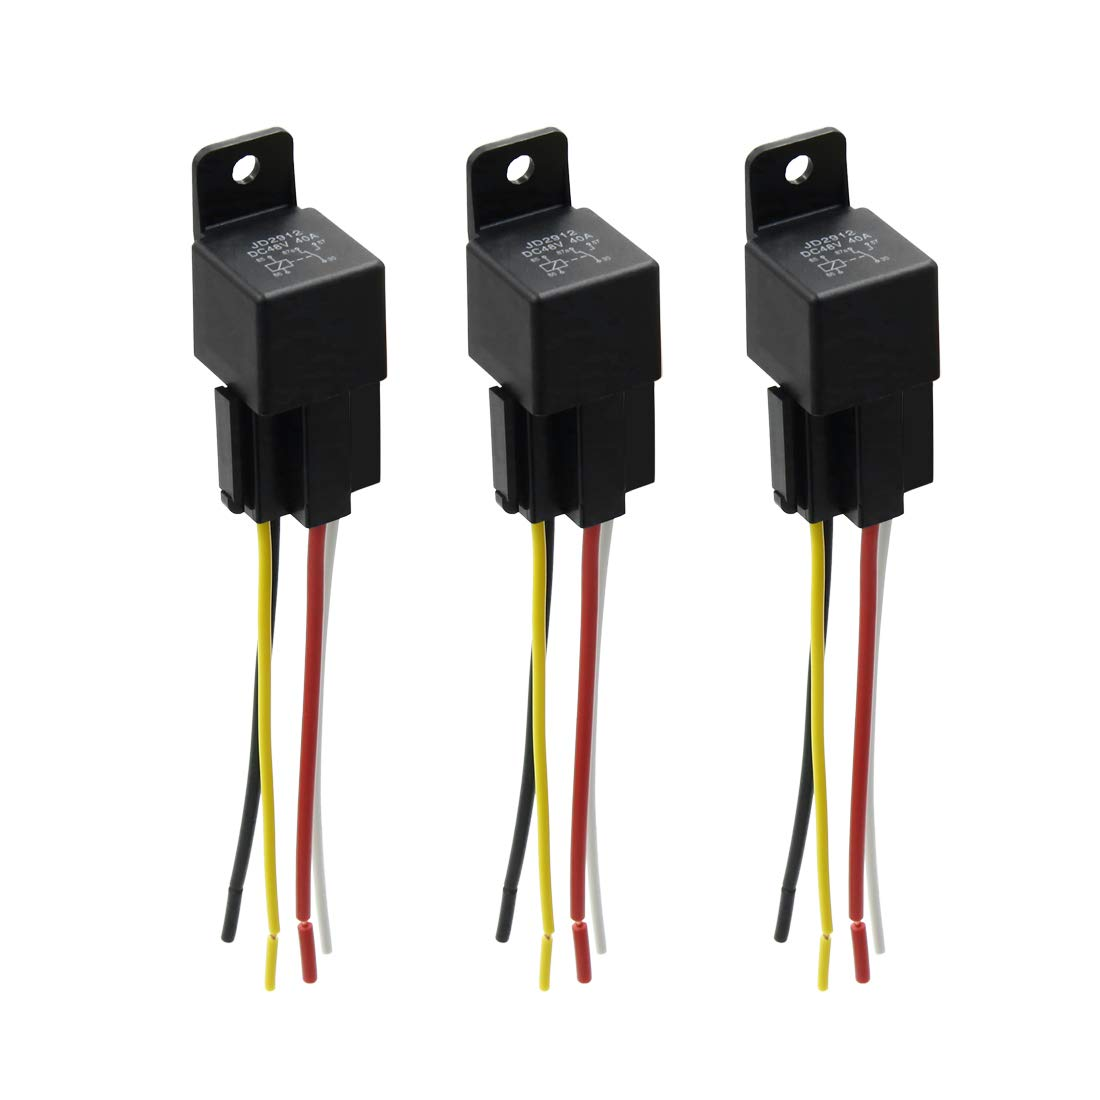 3 Set 12V DC 40A 40Amp 4-Pin SPST Automotive Car Relay 4 Wires Harness Kits